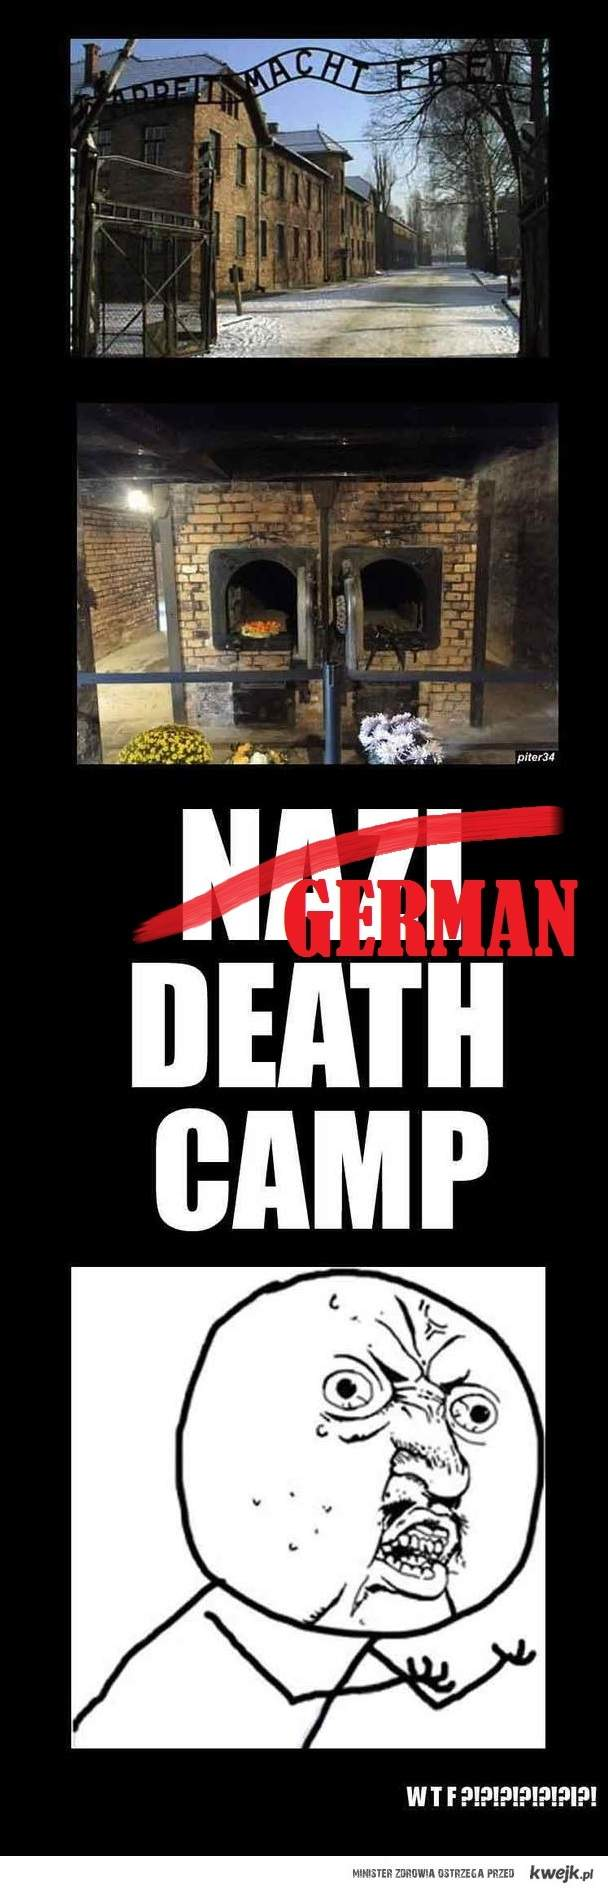 Not Nazi, but German death camp